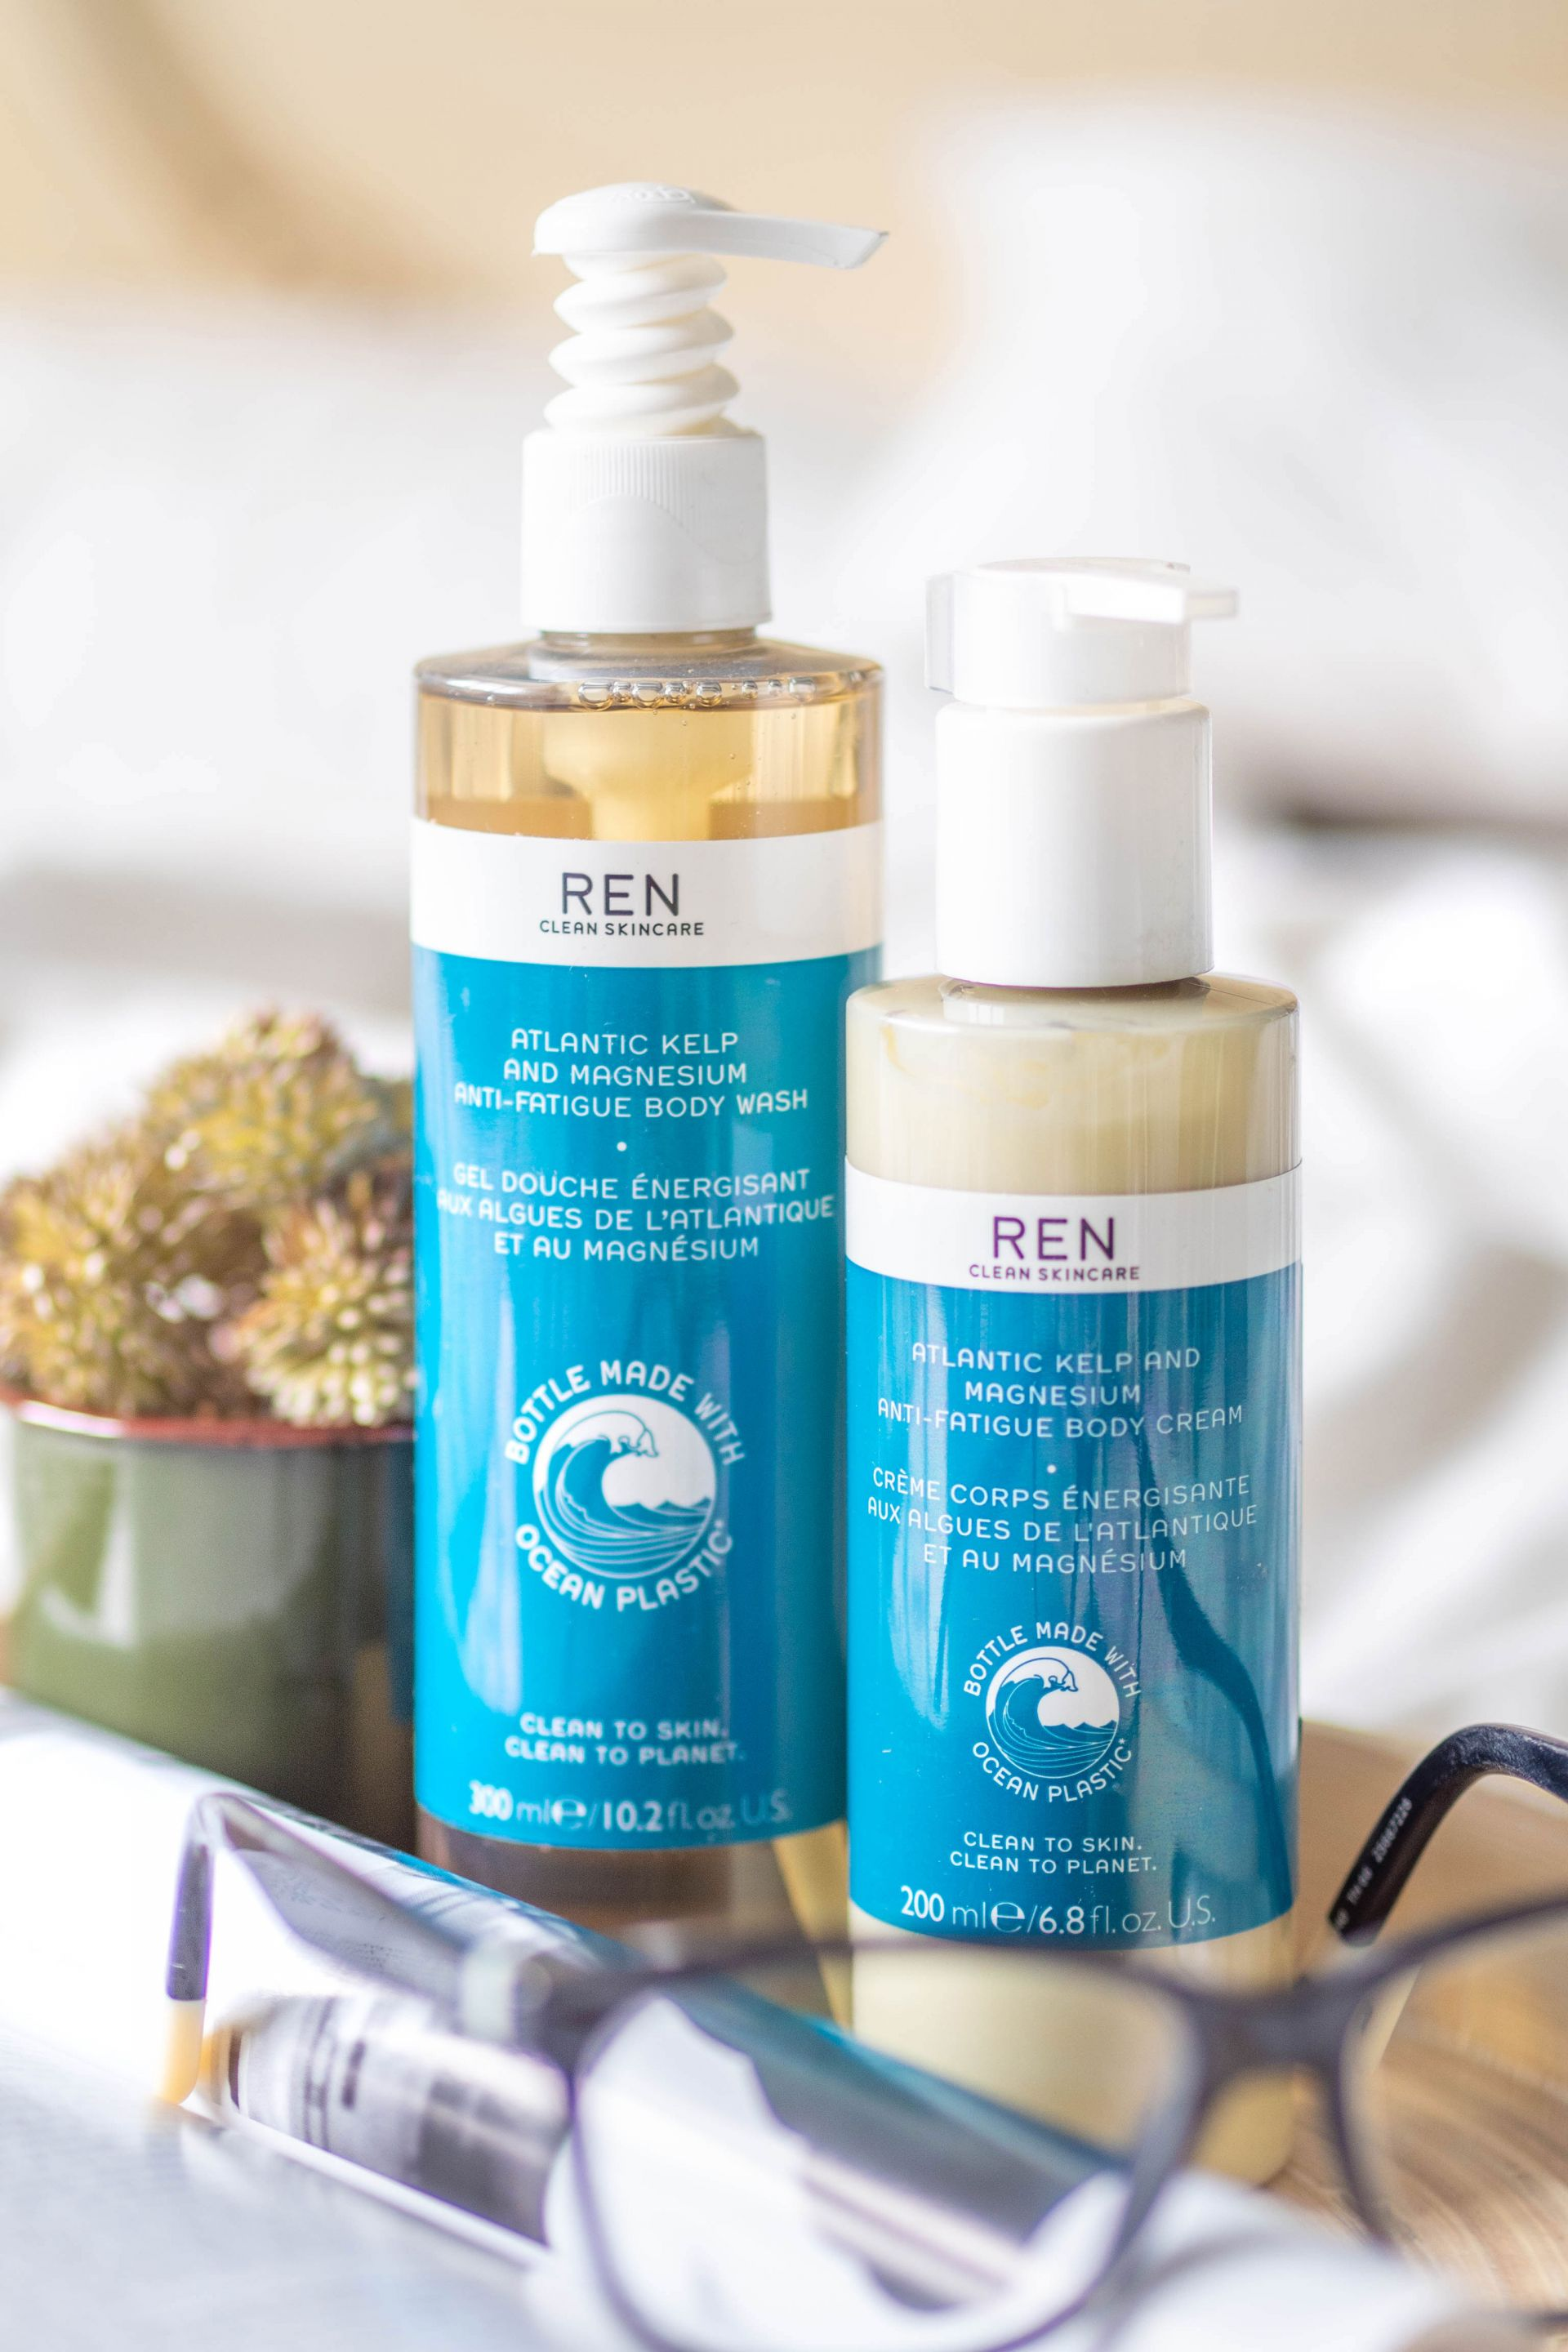 REN - beauty going eco friendly